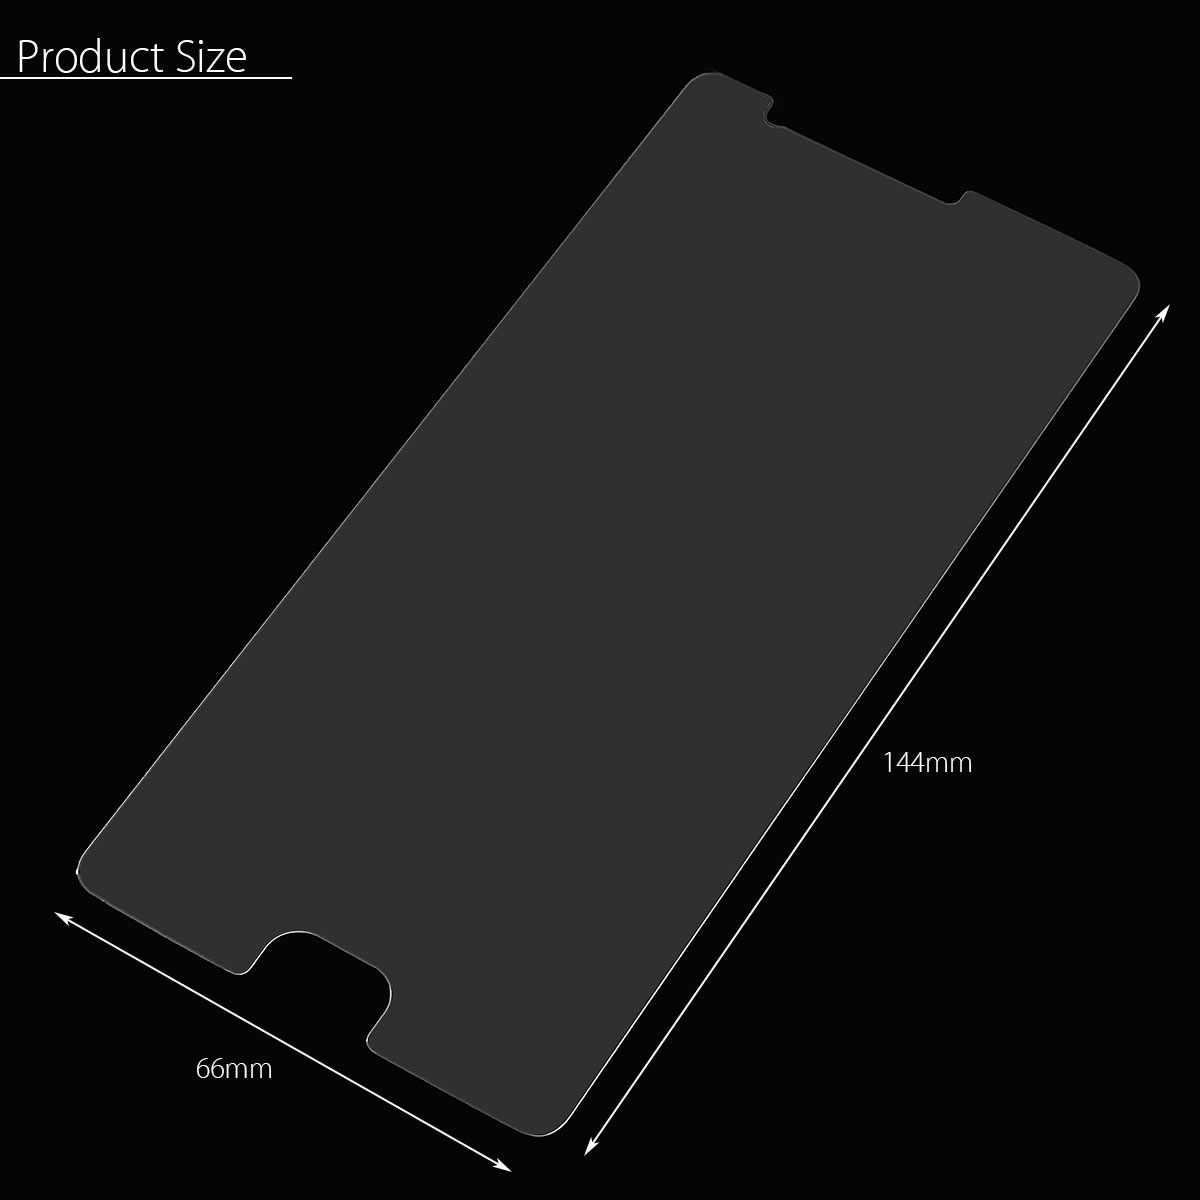 9H Tempered Glass Film Screen Protector for Oneplus 3/3T